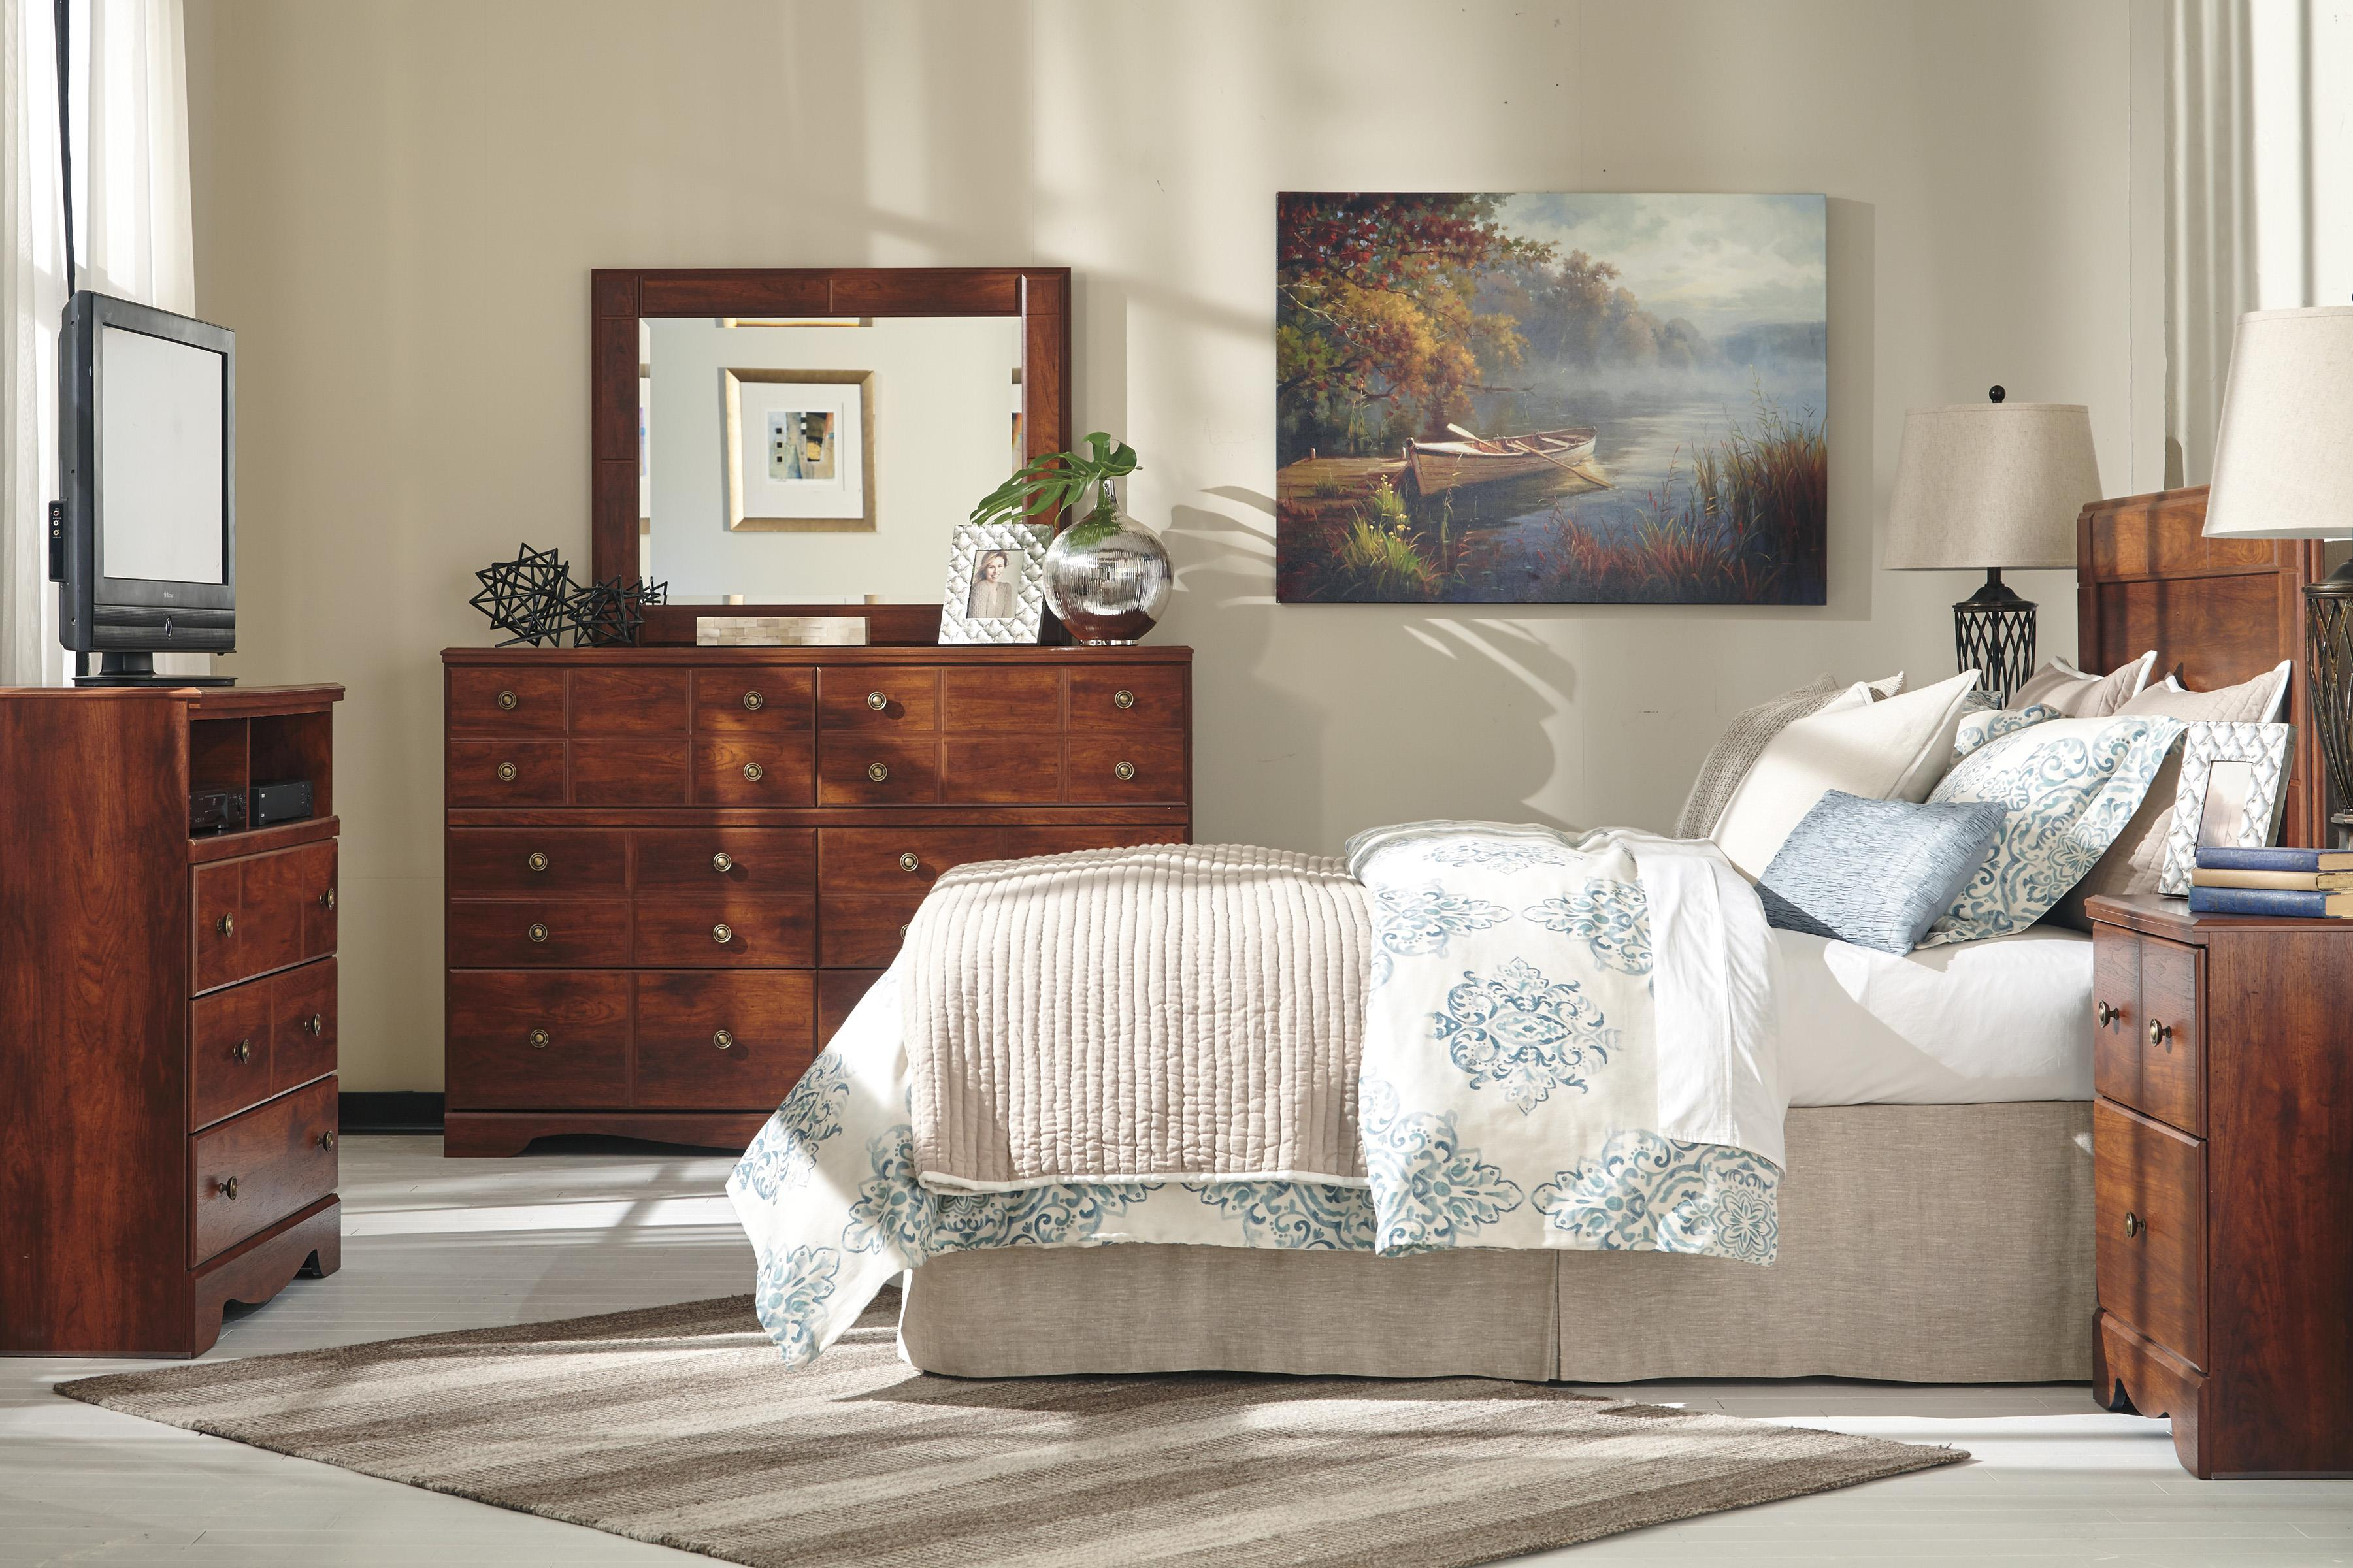 Signature Design by Ashley Brittberg Queen/Full Bedroom Group - Item Number: B265 QF Bedroom Group 3